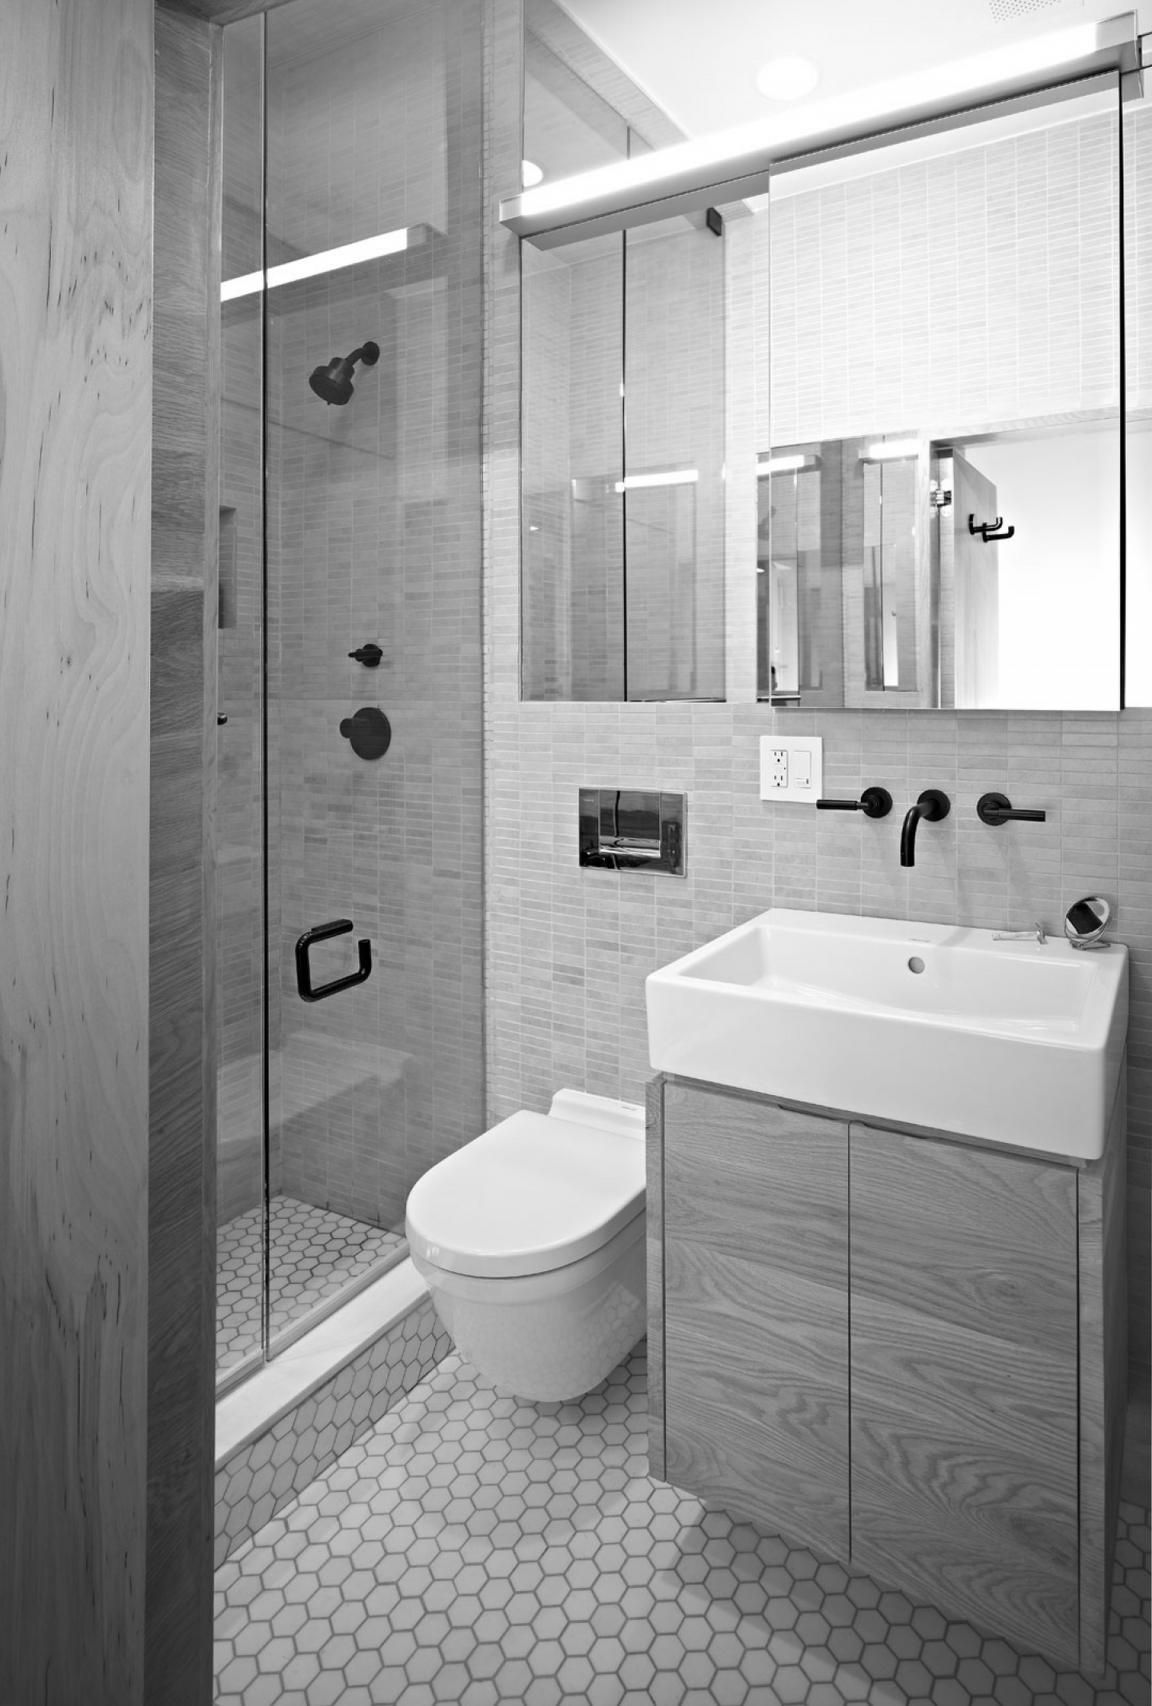 Best Ideas For Bathroom Small Space Give Your More Impressions Small Shower Room Bathroom Layout Bathroom Design